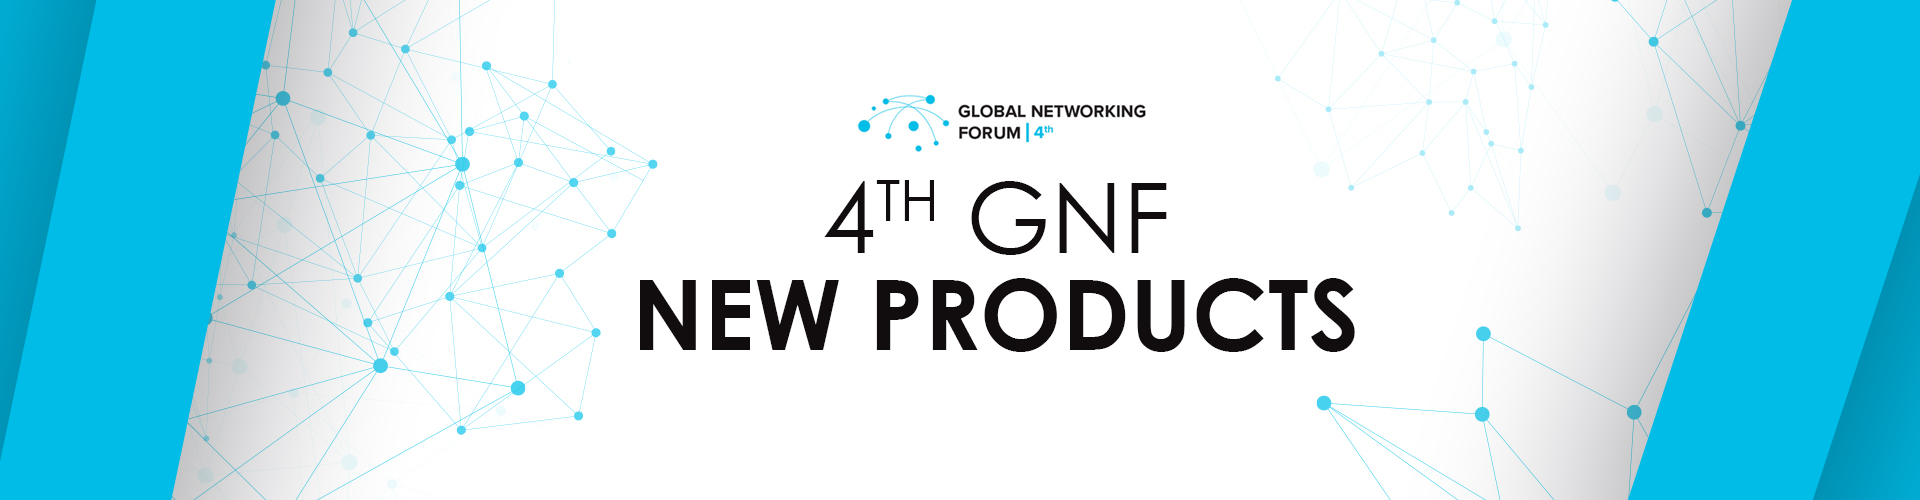 Discover new products of 4th GNF!